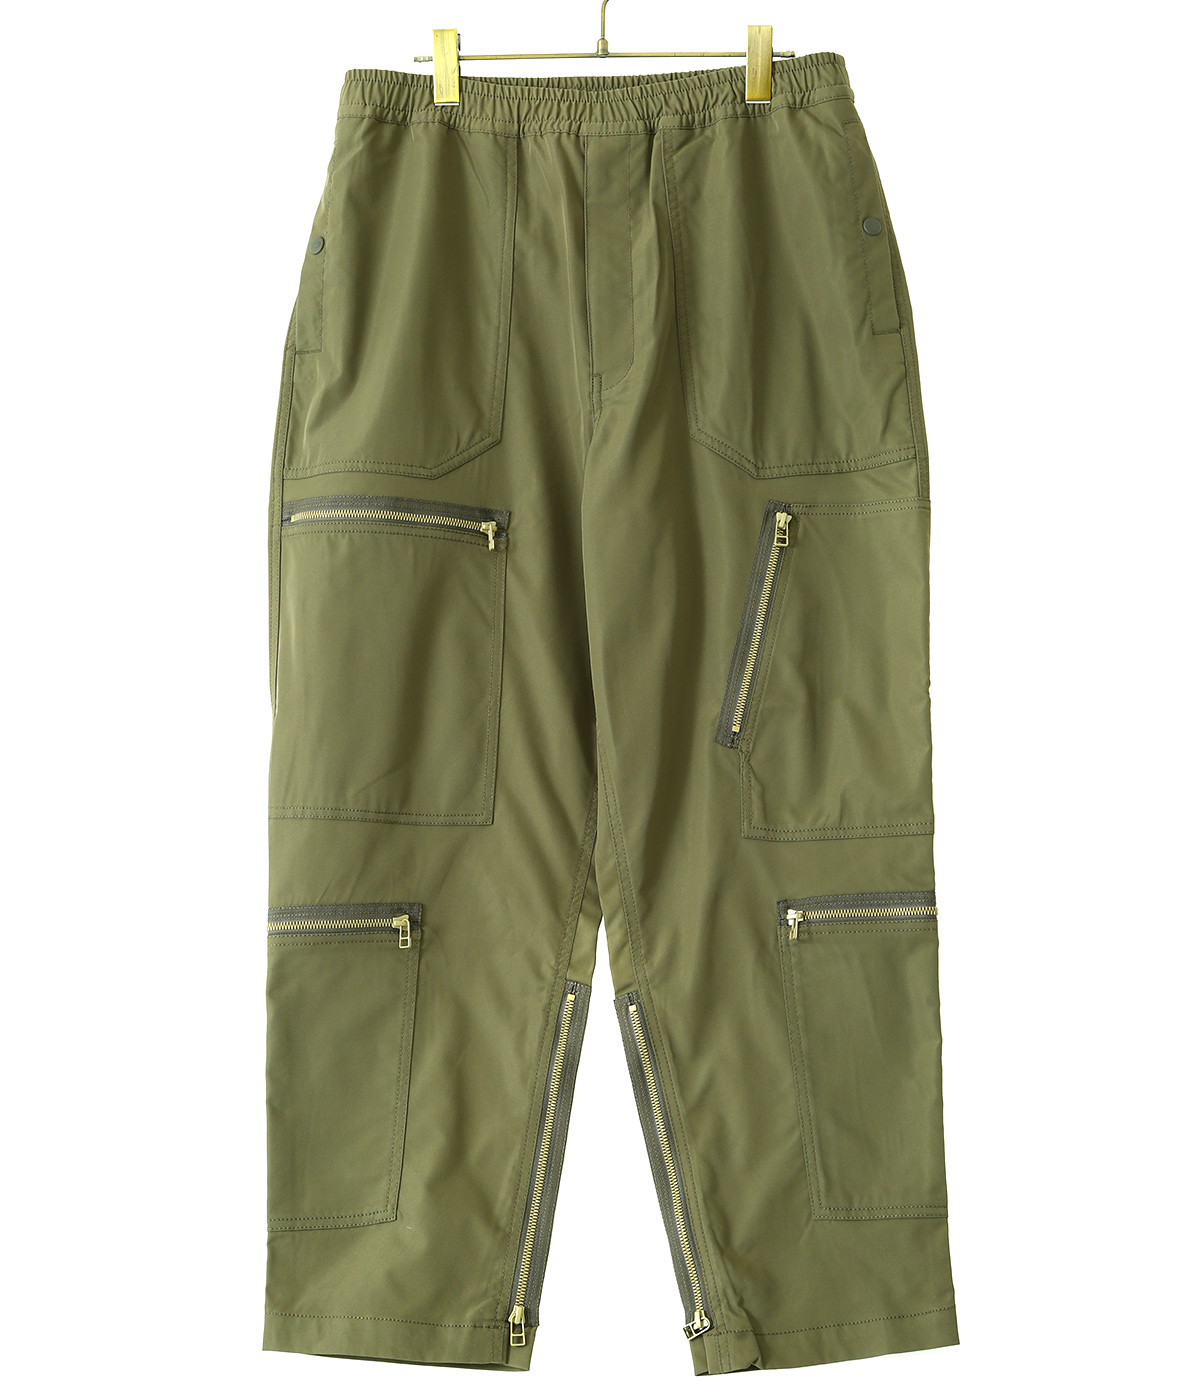 TECH PARACHUTE PANTS